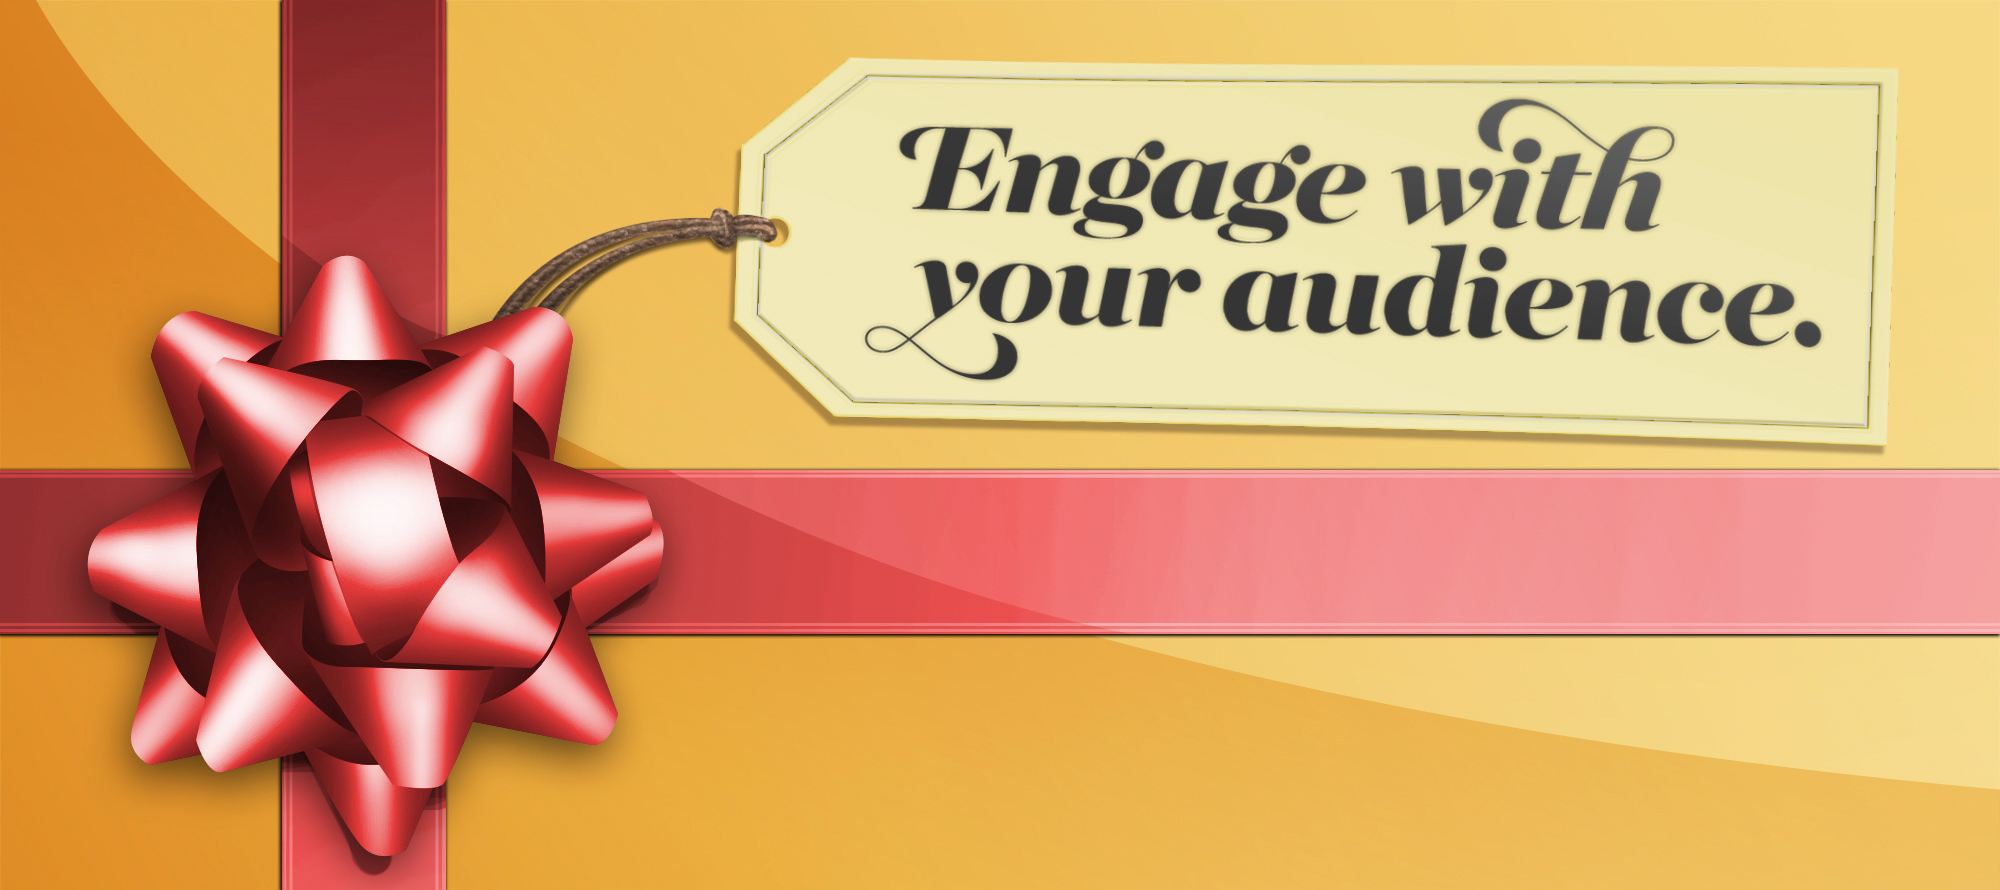 Gold: Engage with your audience